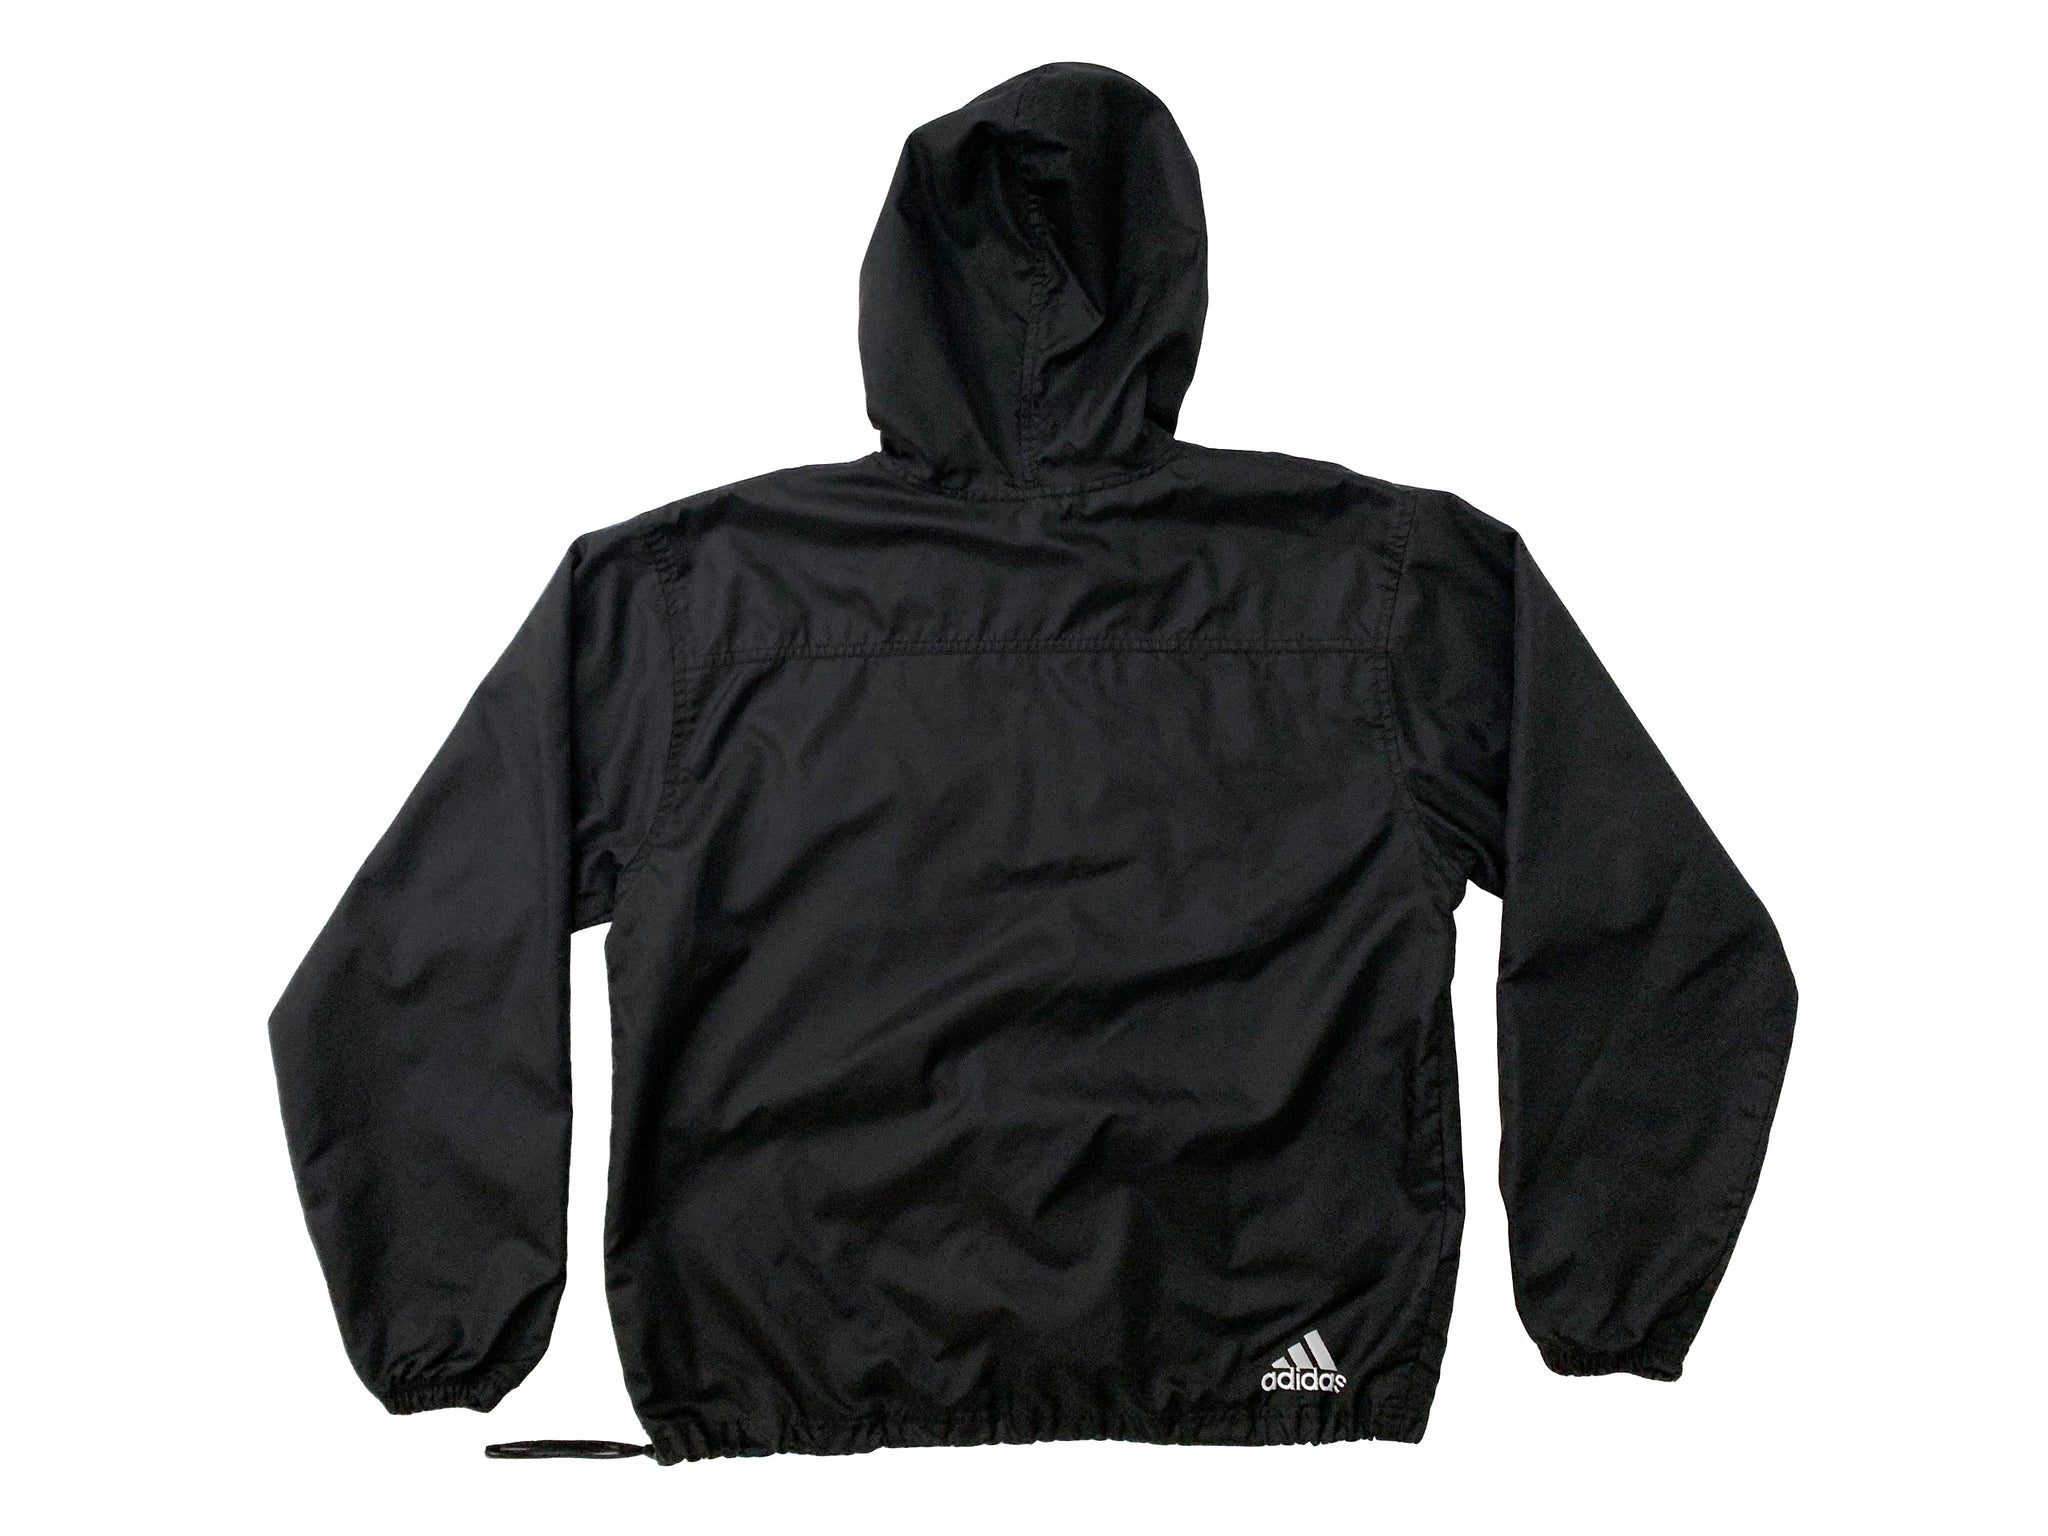 Adidas Quarter Zip Hooded Windbreaker